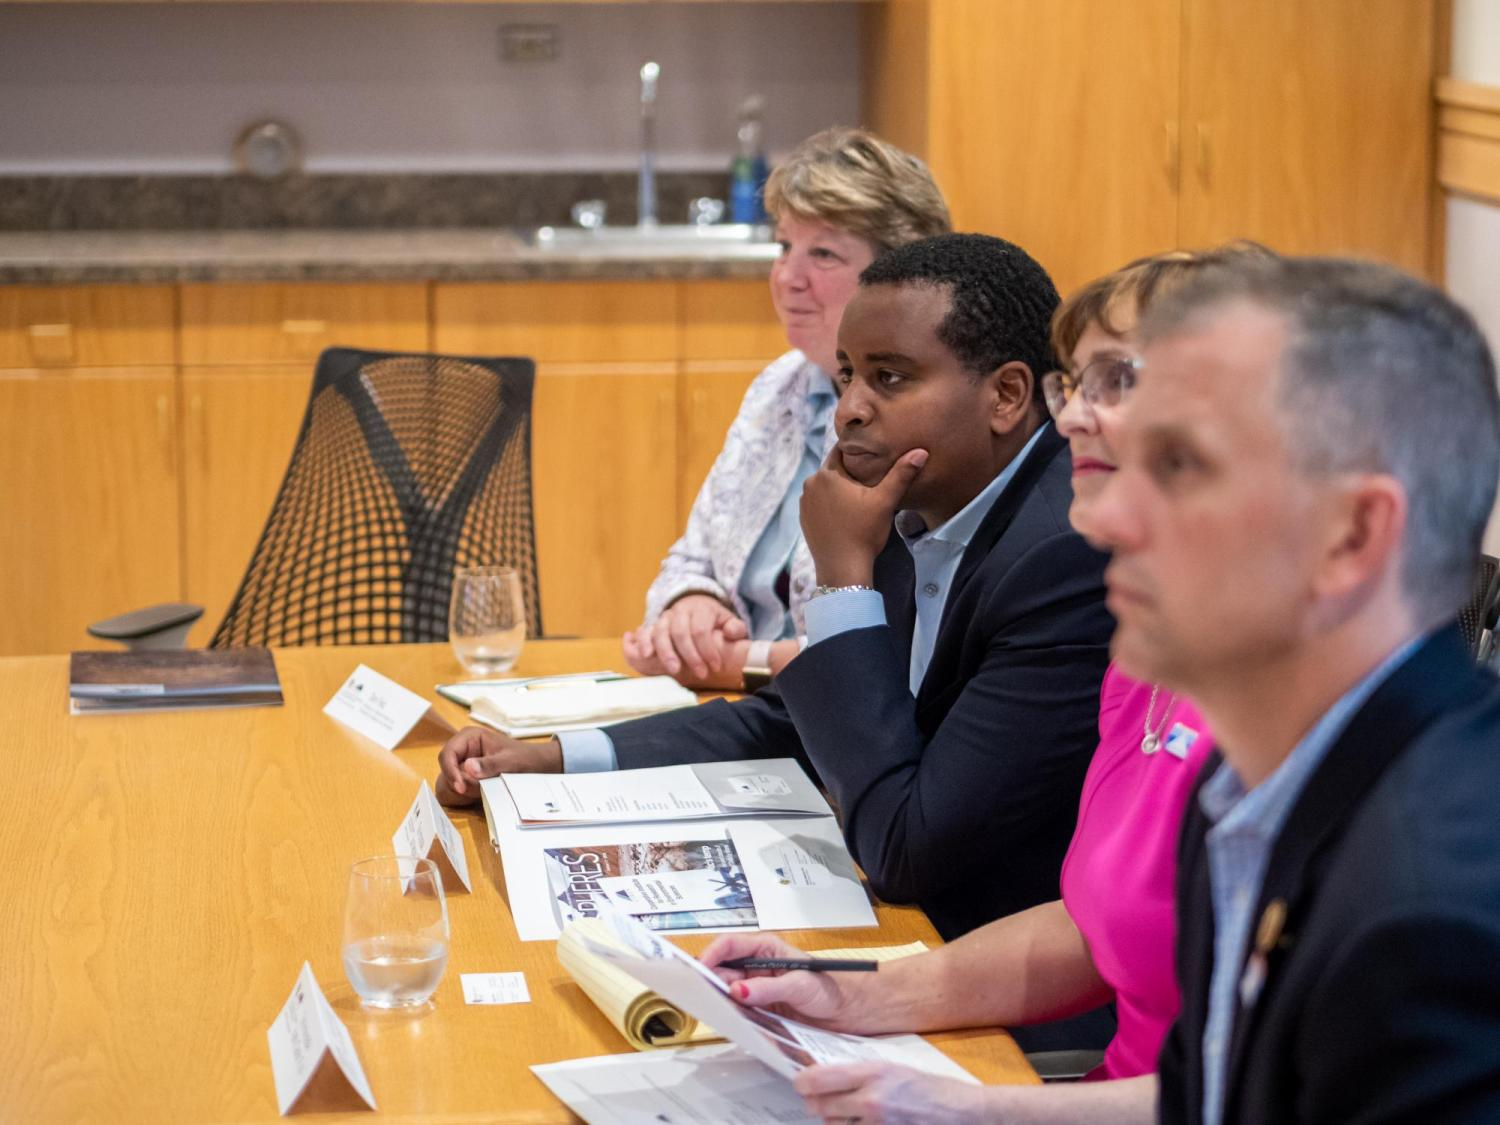 Congressional Hearing On Campus Highlights Cu Boulder